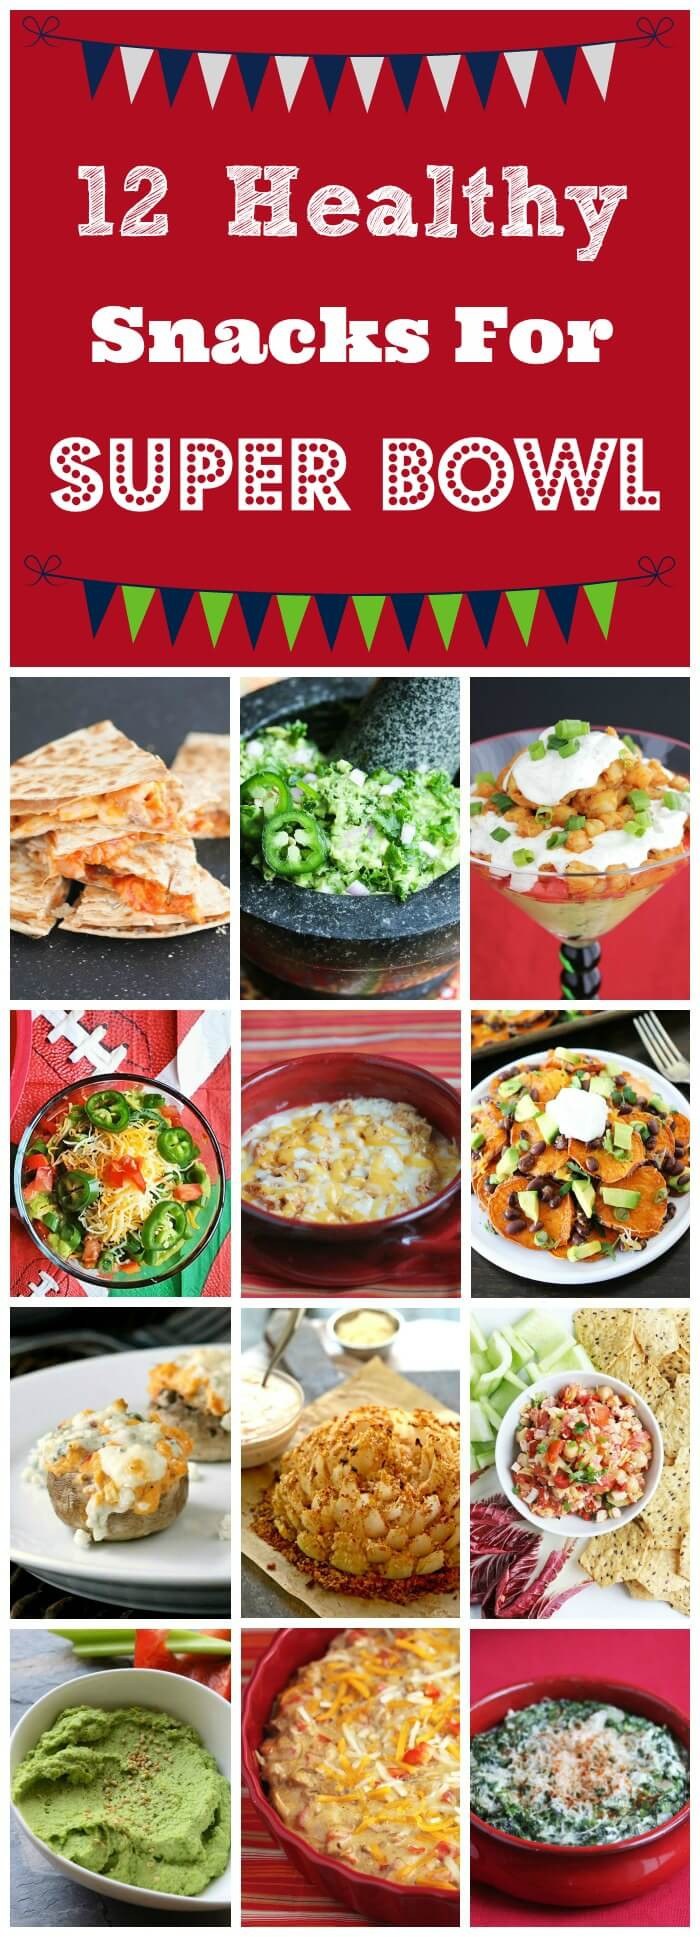 Healthy Snacks For Superbowl Party  12 Healthy Super Bowl Snack Recipes Jeanette s Healthy